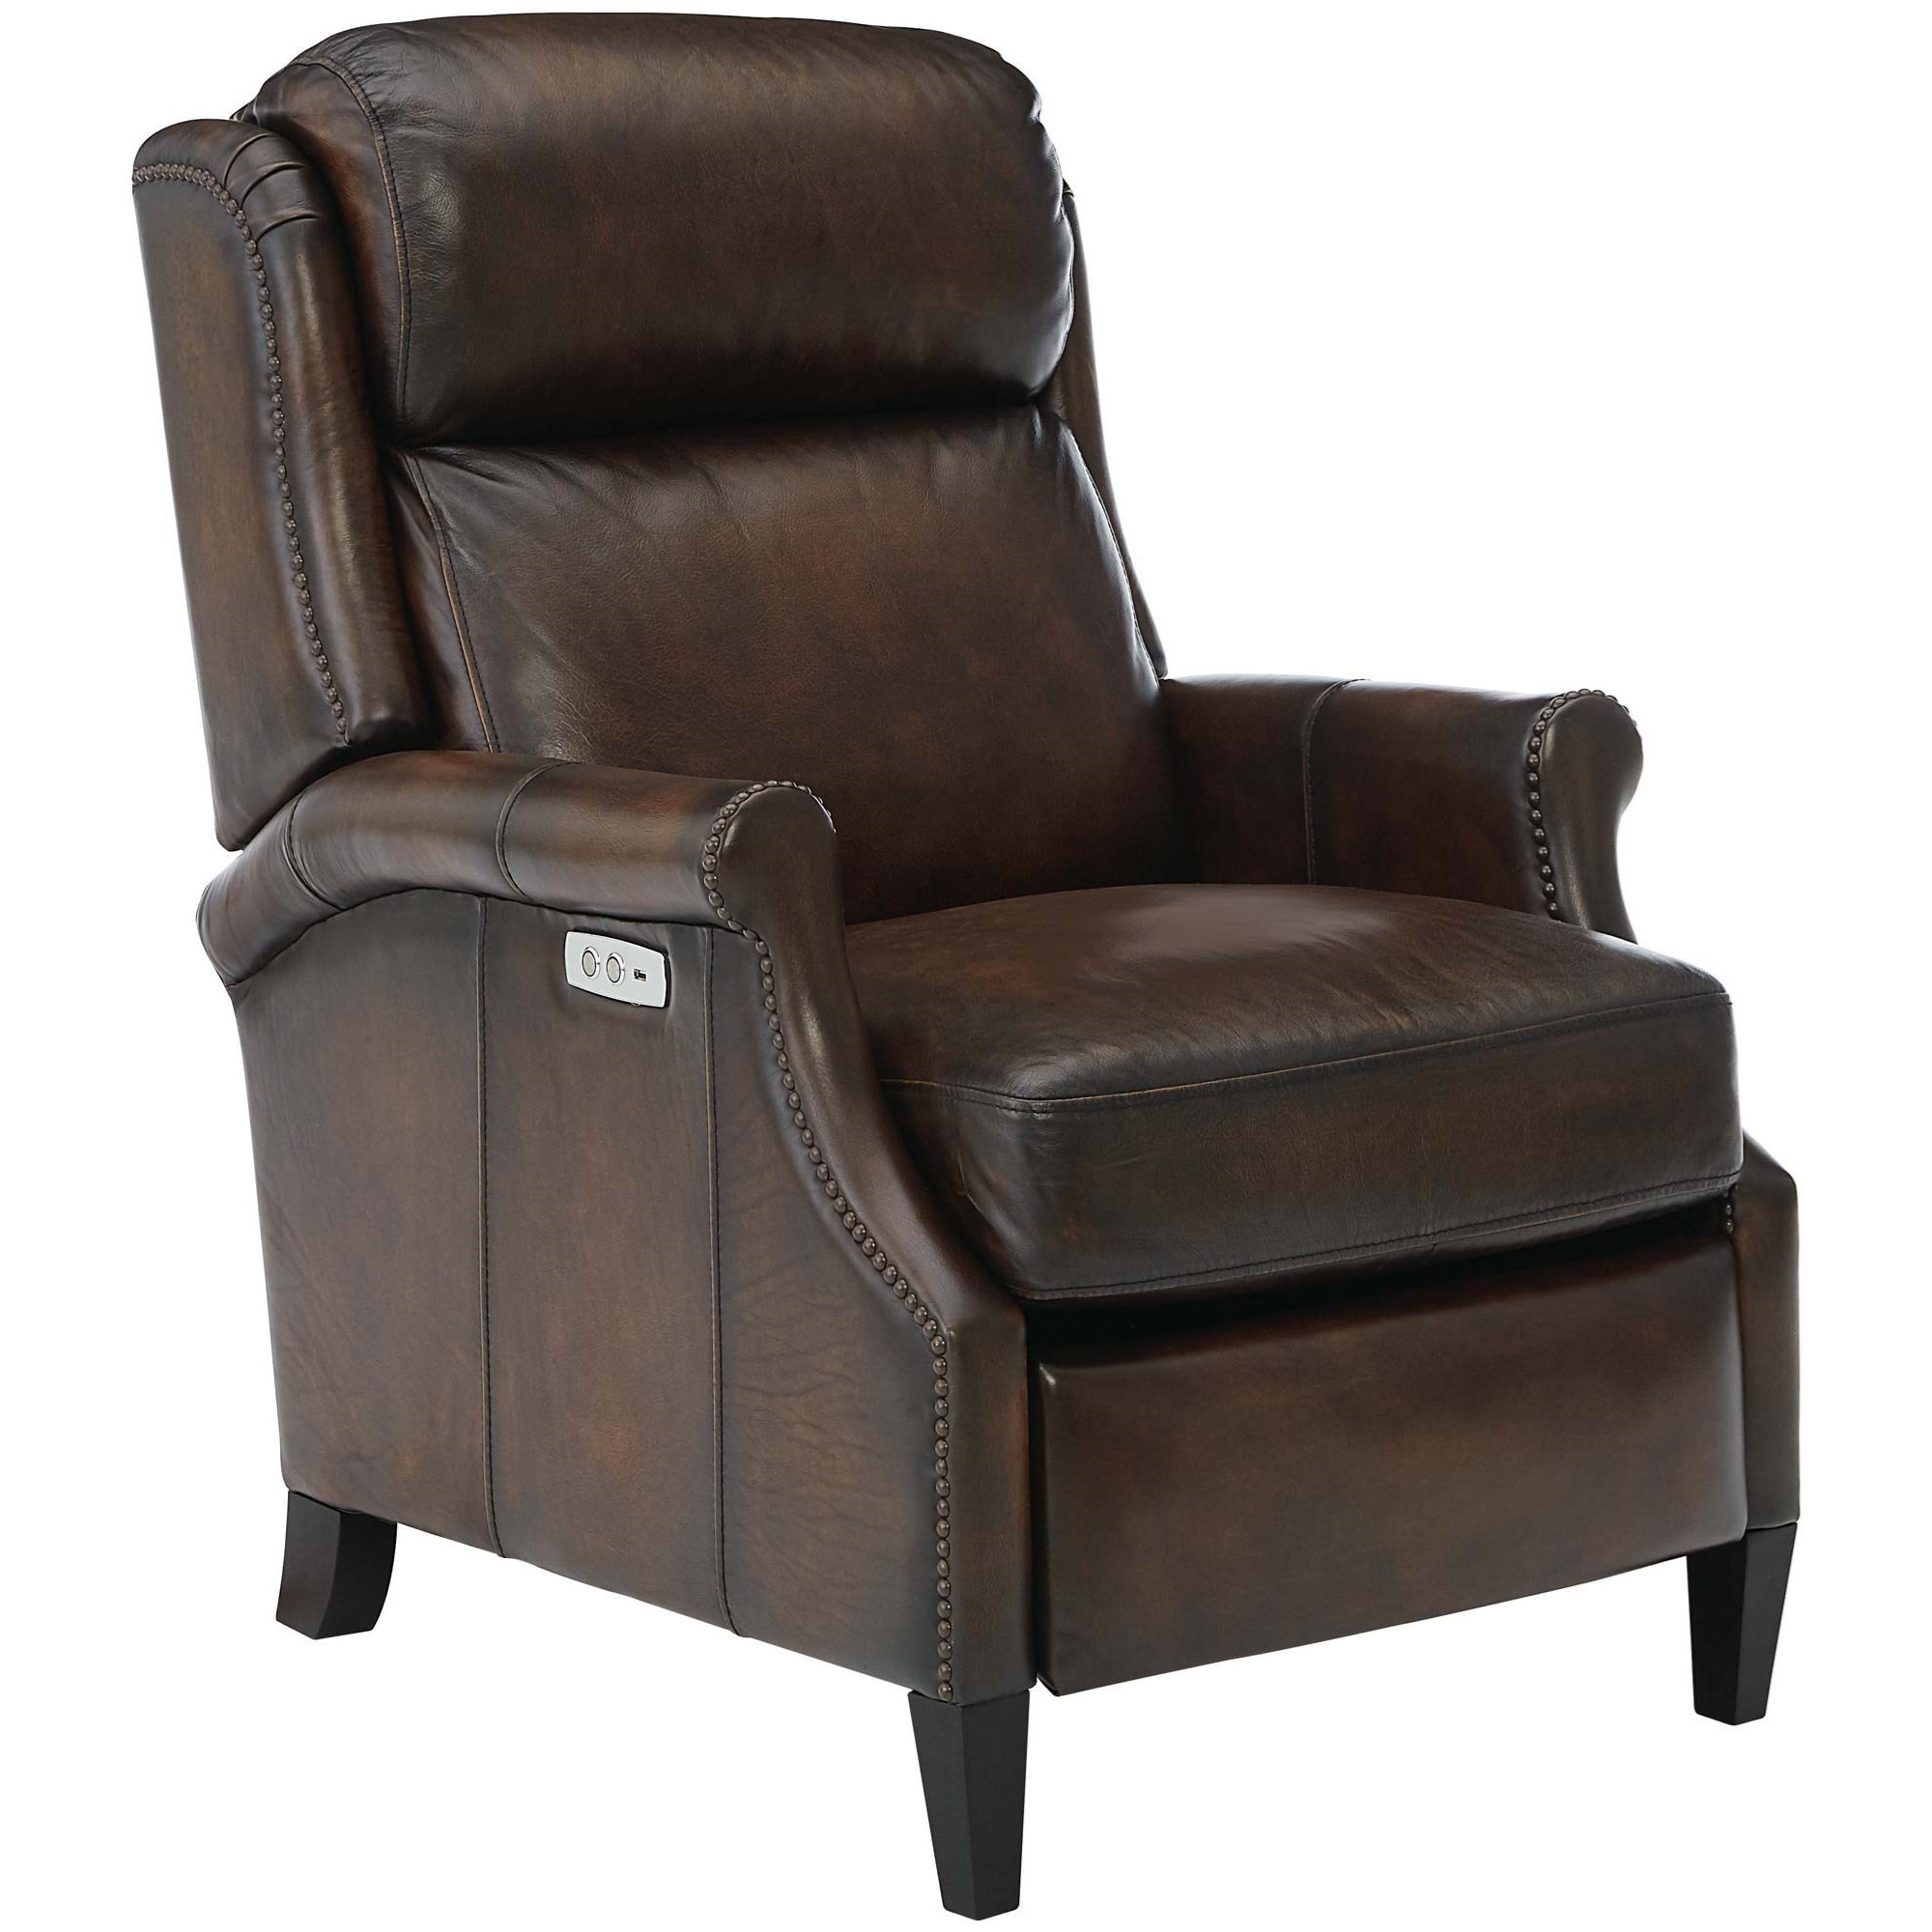 Power Motion High-Leg Recliner